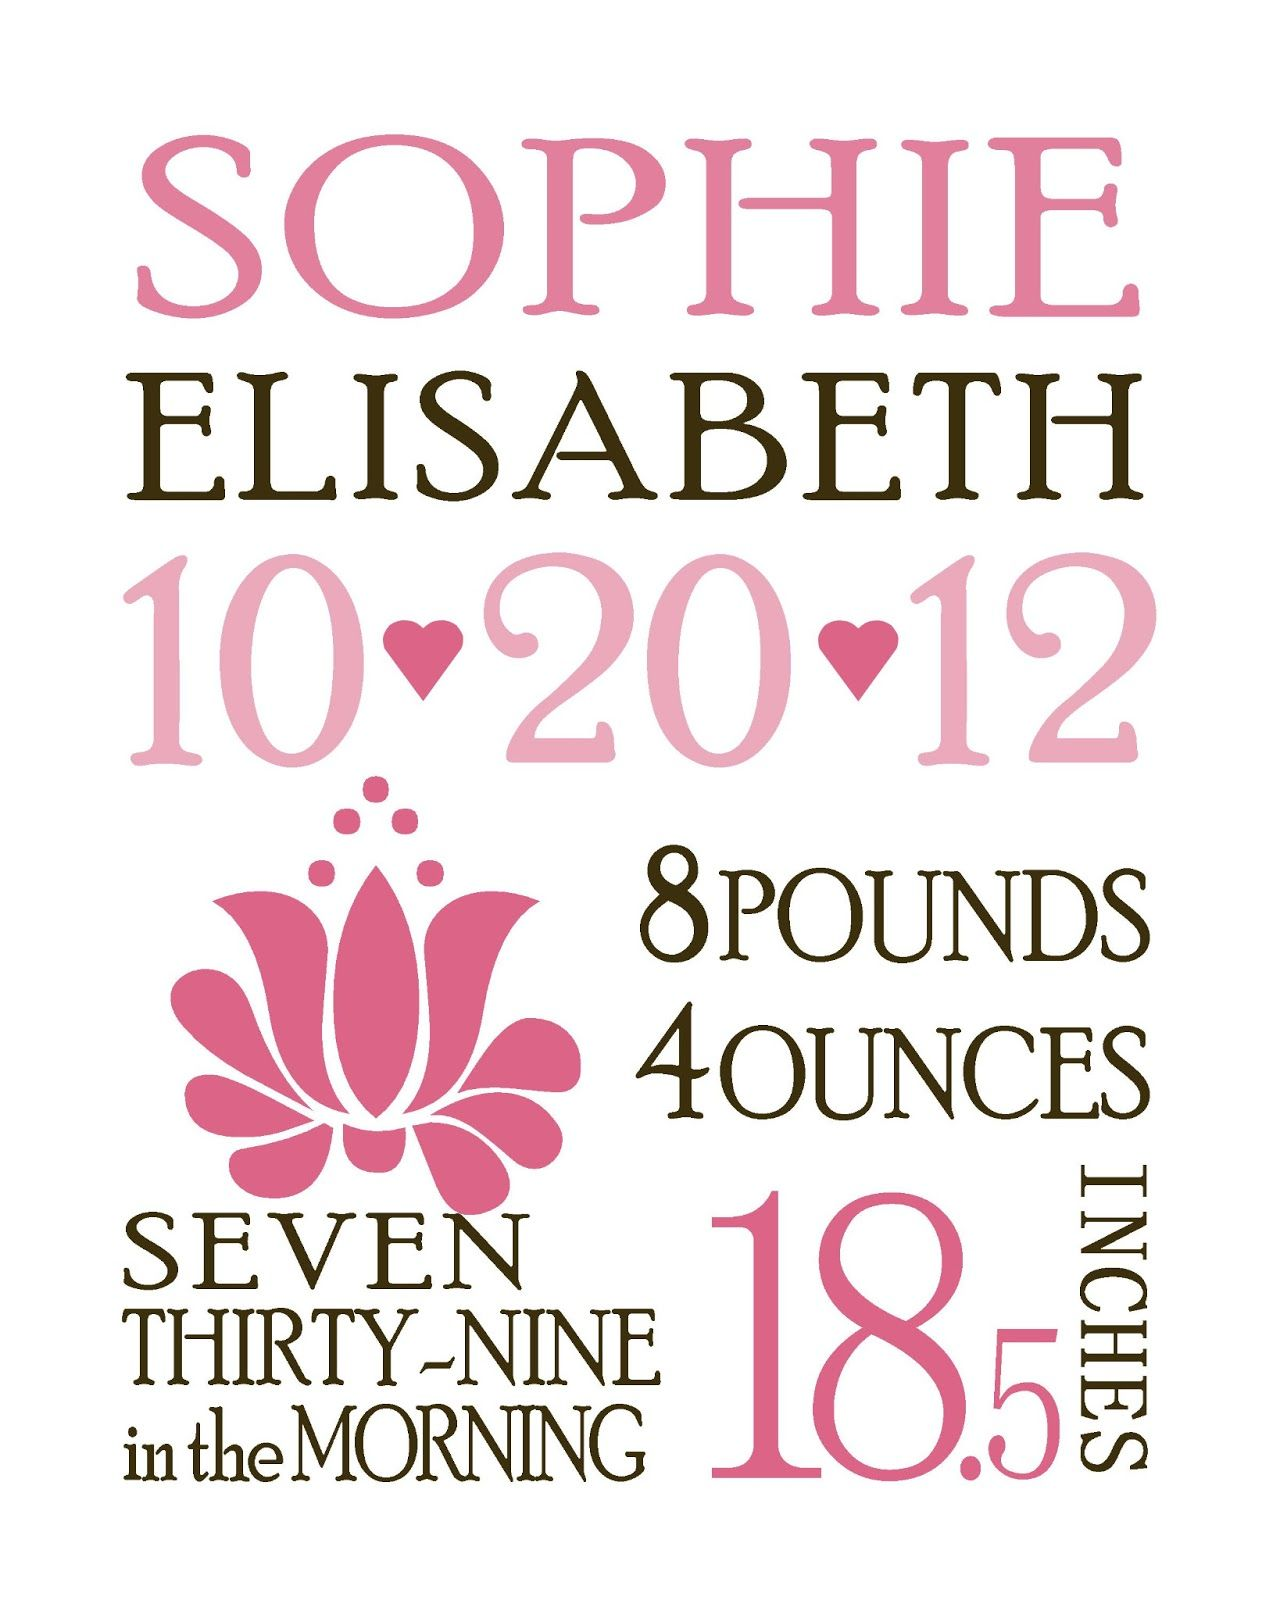 I designed this personalized birth announcement for a good friend – Personalized Birth Announcement